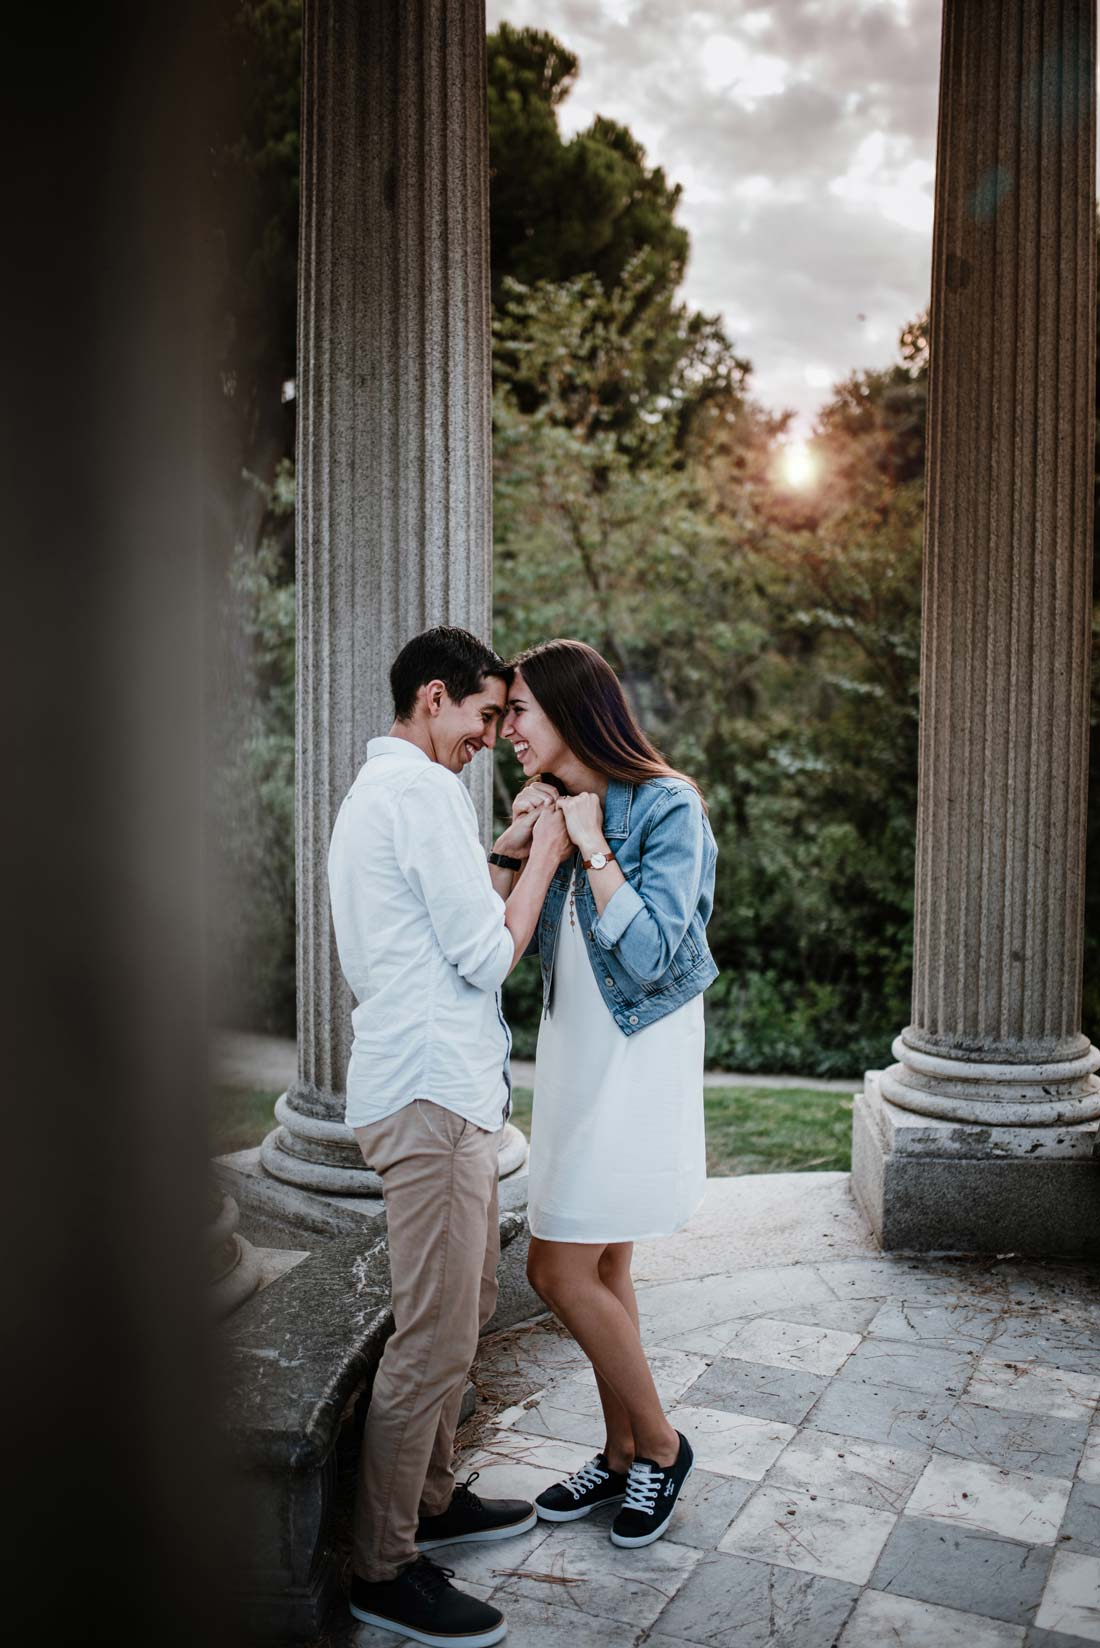 happy engagement at sunset